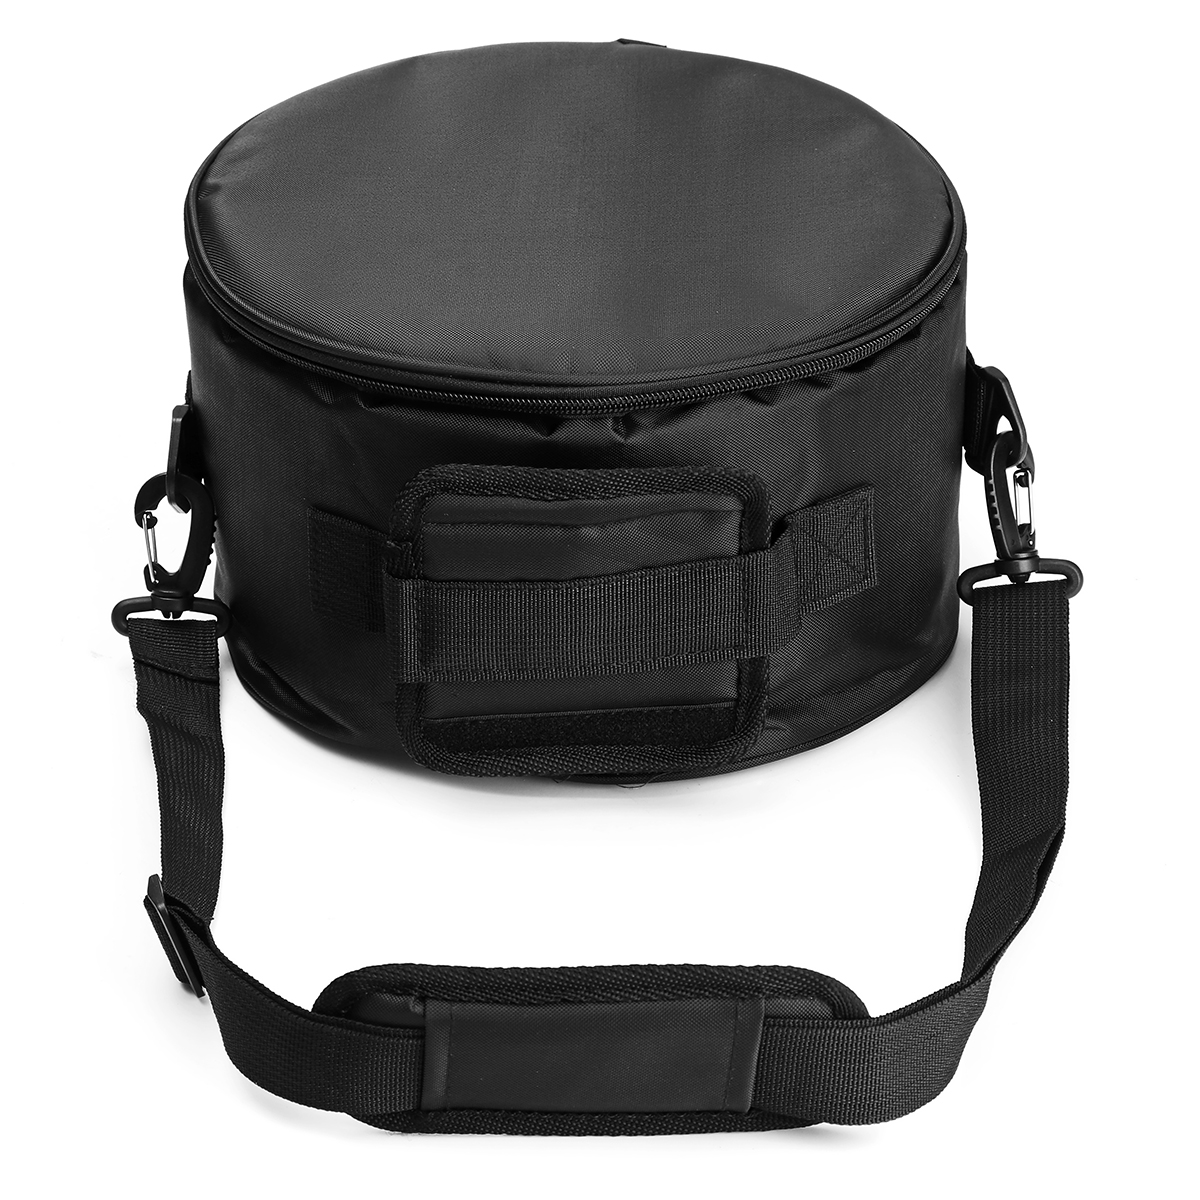 Steel Tongue Drum Bag Storage Punch Soulder Crossbody Bag For Outdoor Camping Leisure Wear